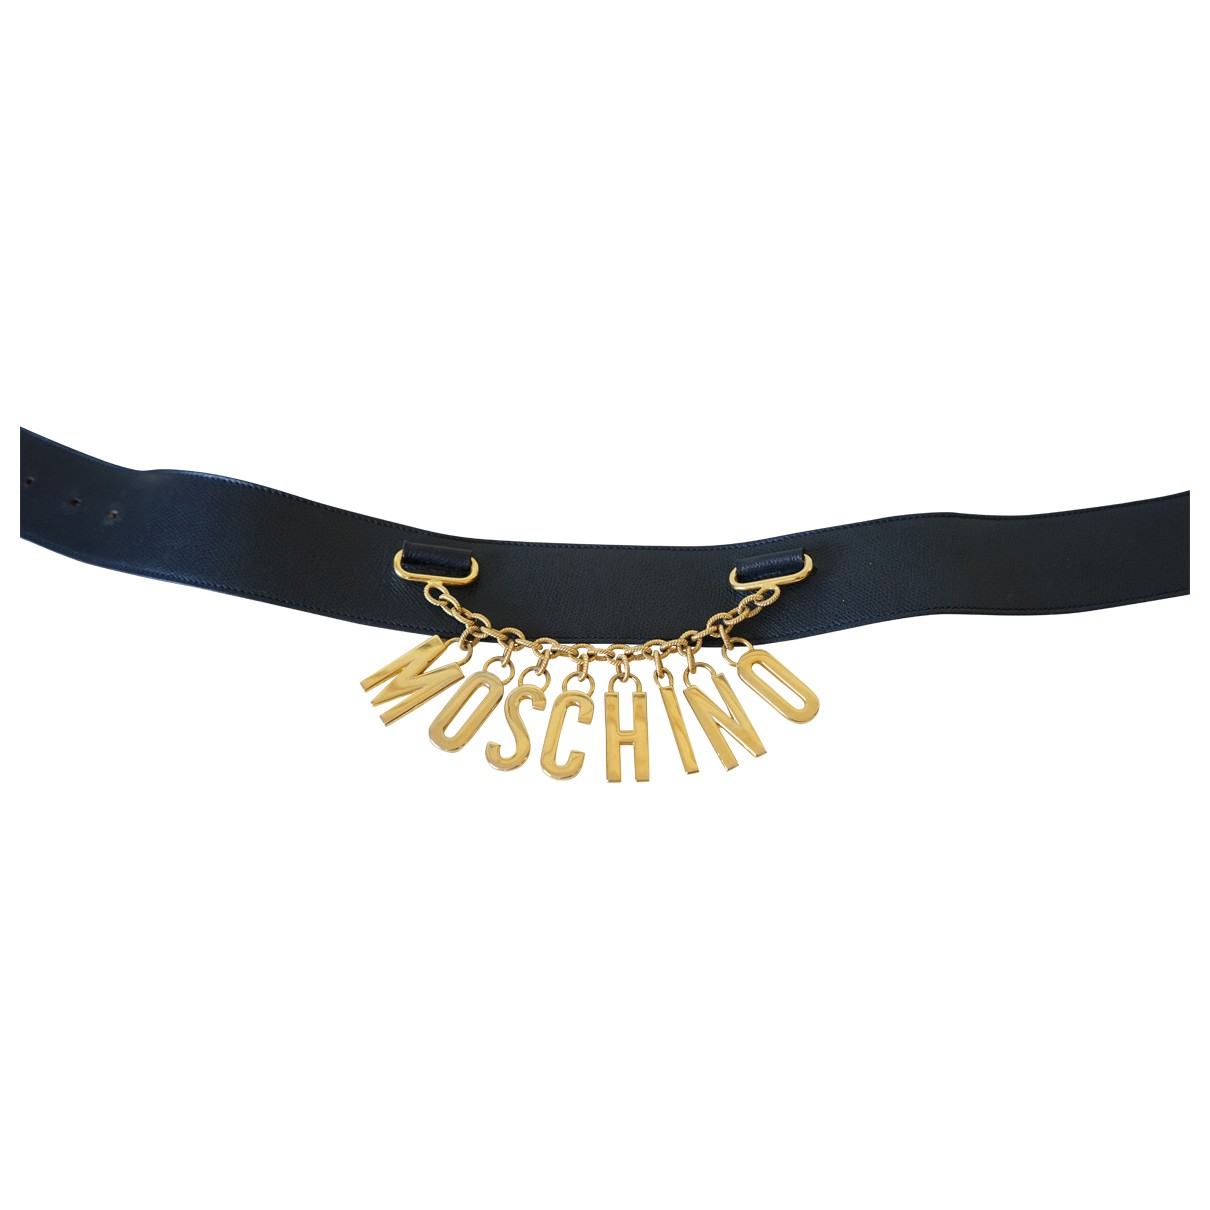 Moschino \N Navy Leather belt for Women M International